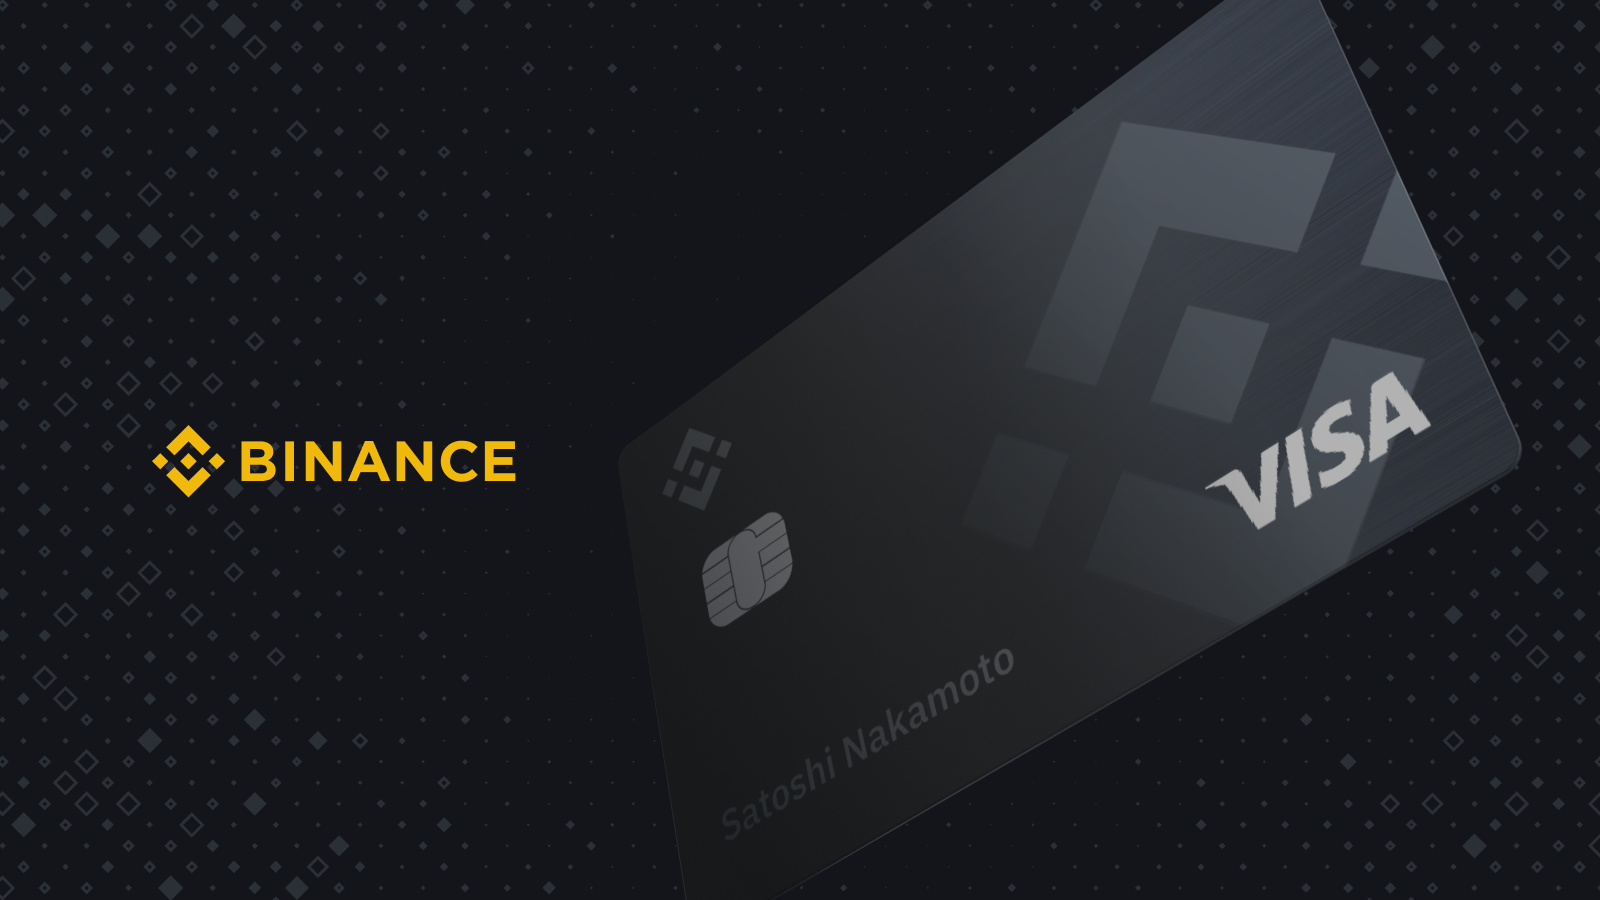 binance + visa